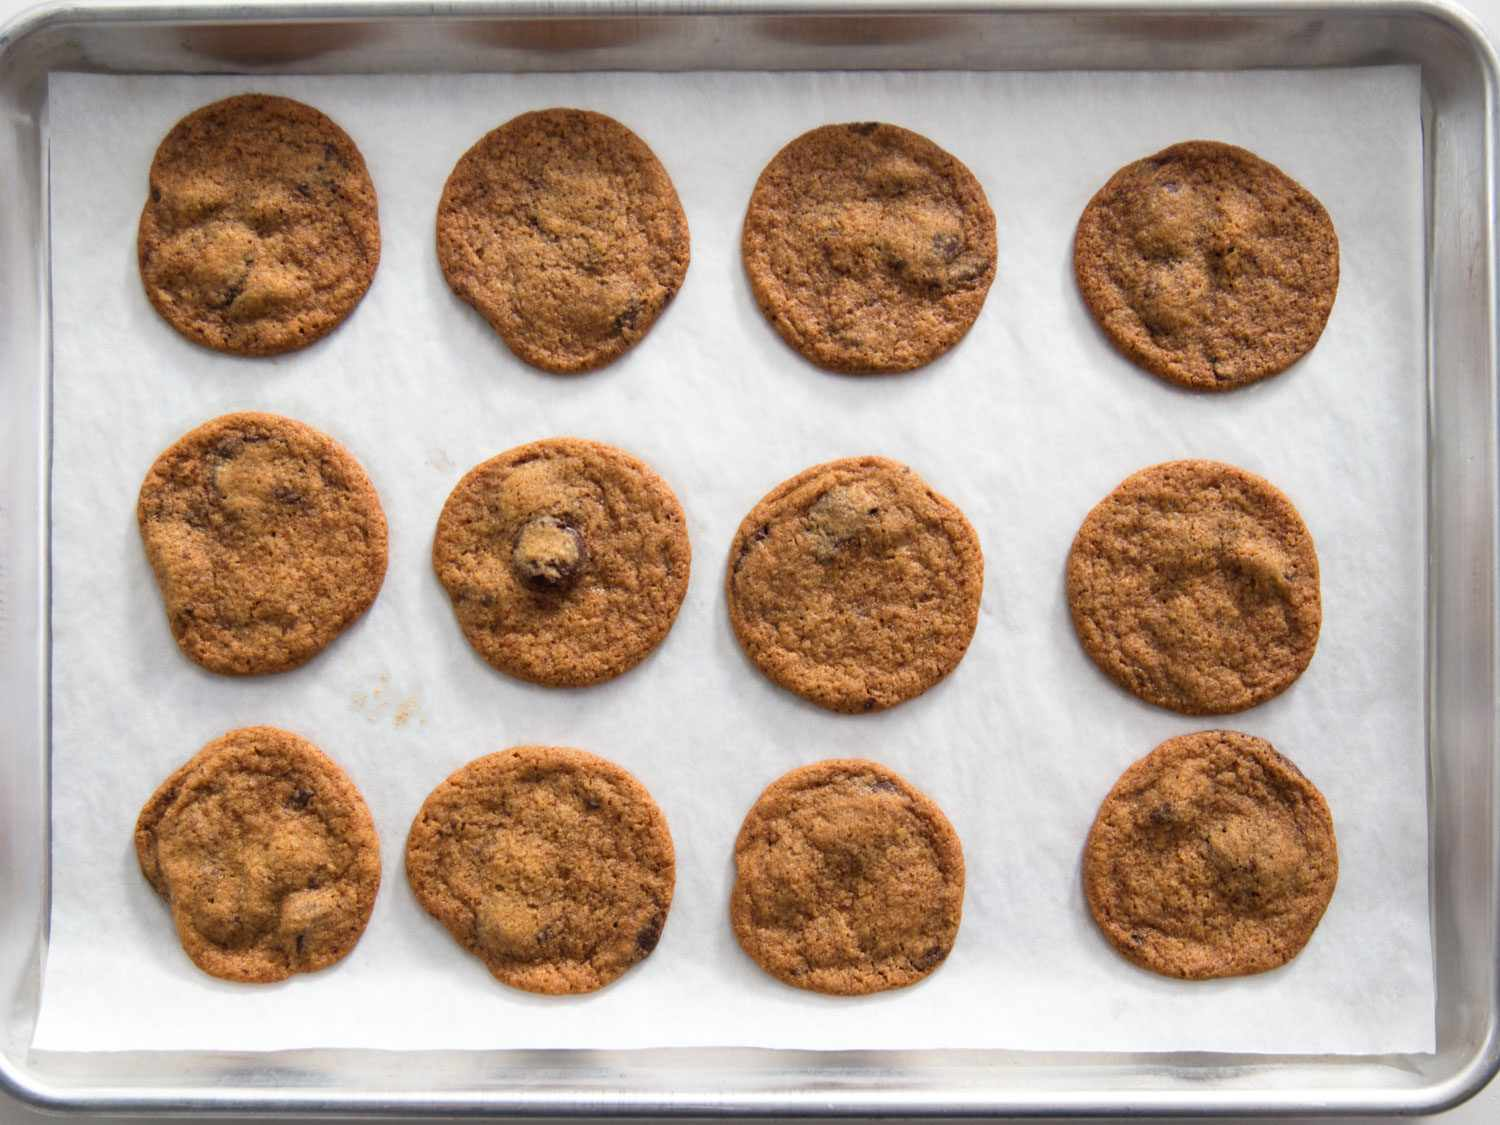 Overhead shot of thin and crispy Tate's-style chocolate chip cookies on a parchment-lined baking sheet